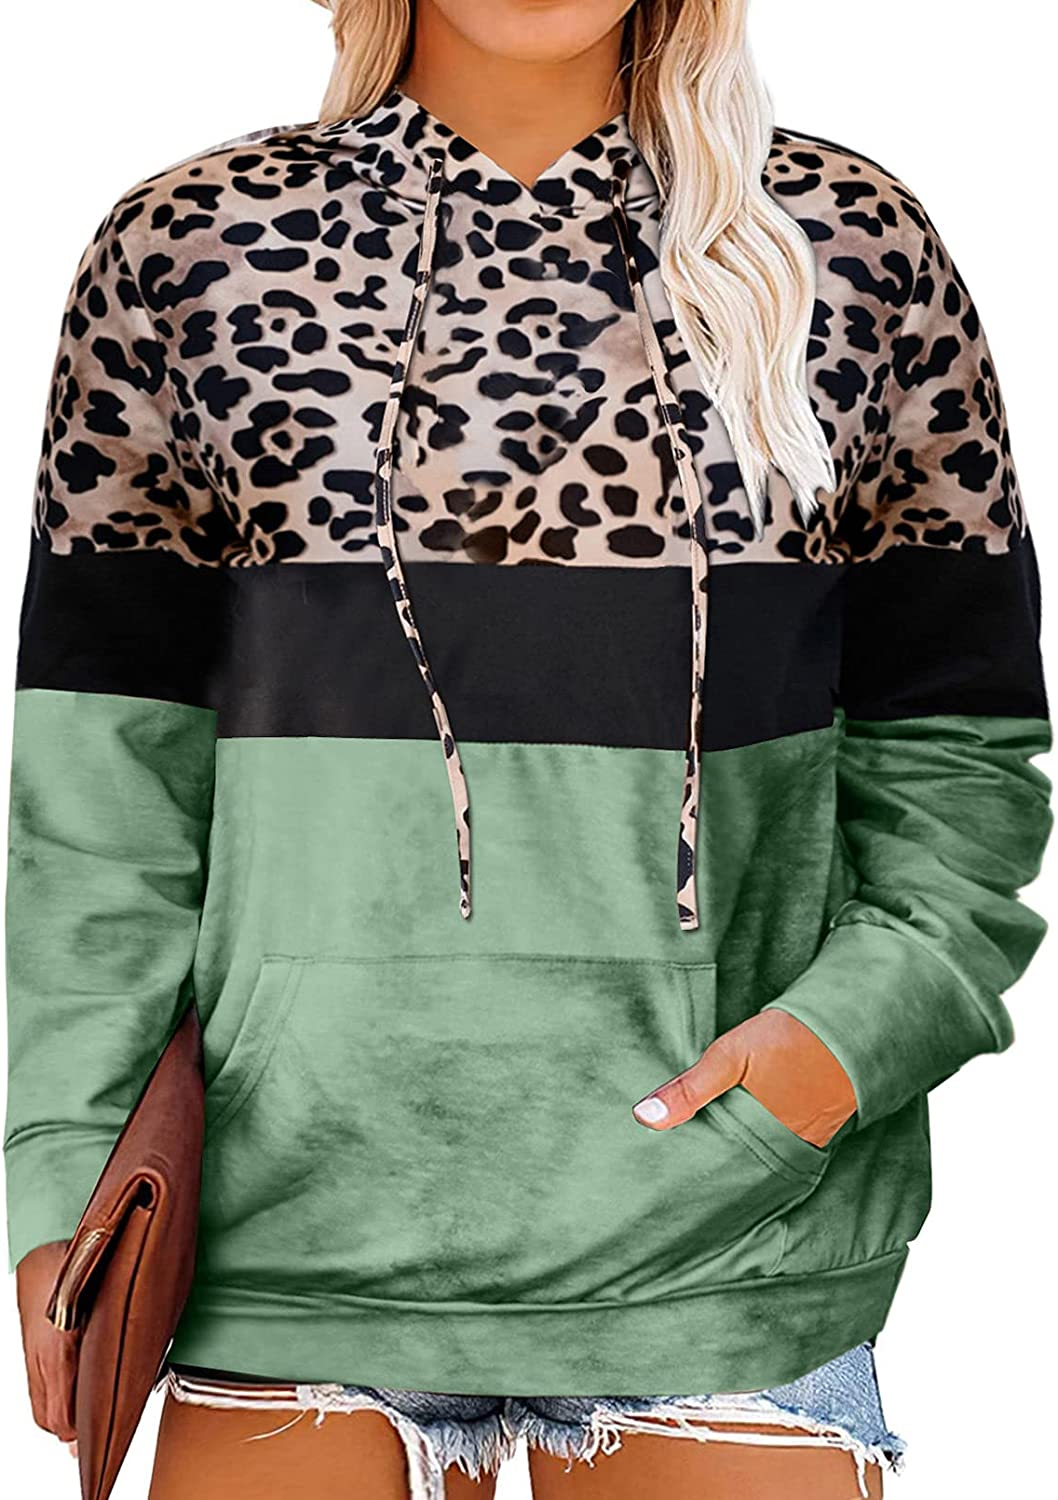 Happy Sailed Womens Plus Size Hoodies Tops Tie Dye Printed Long Sleeve Drawstring Pullover Sweatshirts with Pockets(1X-5X)